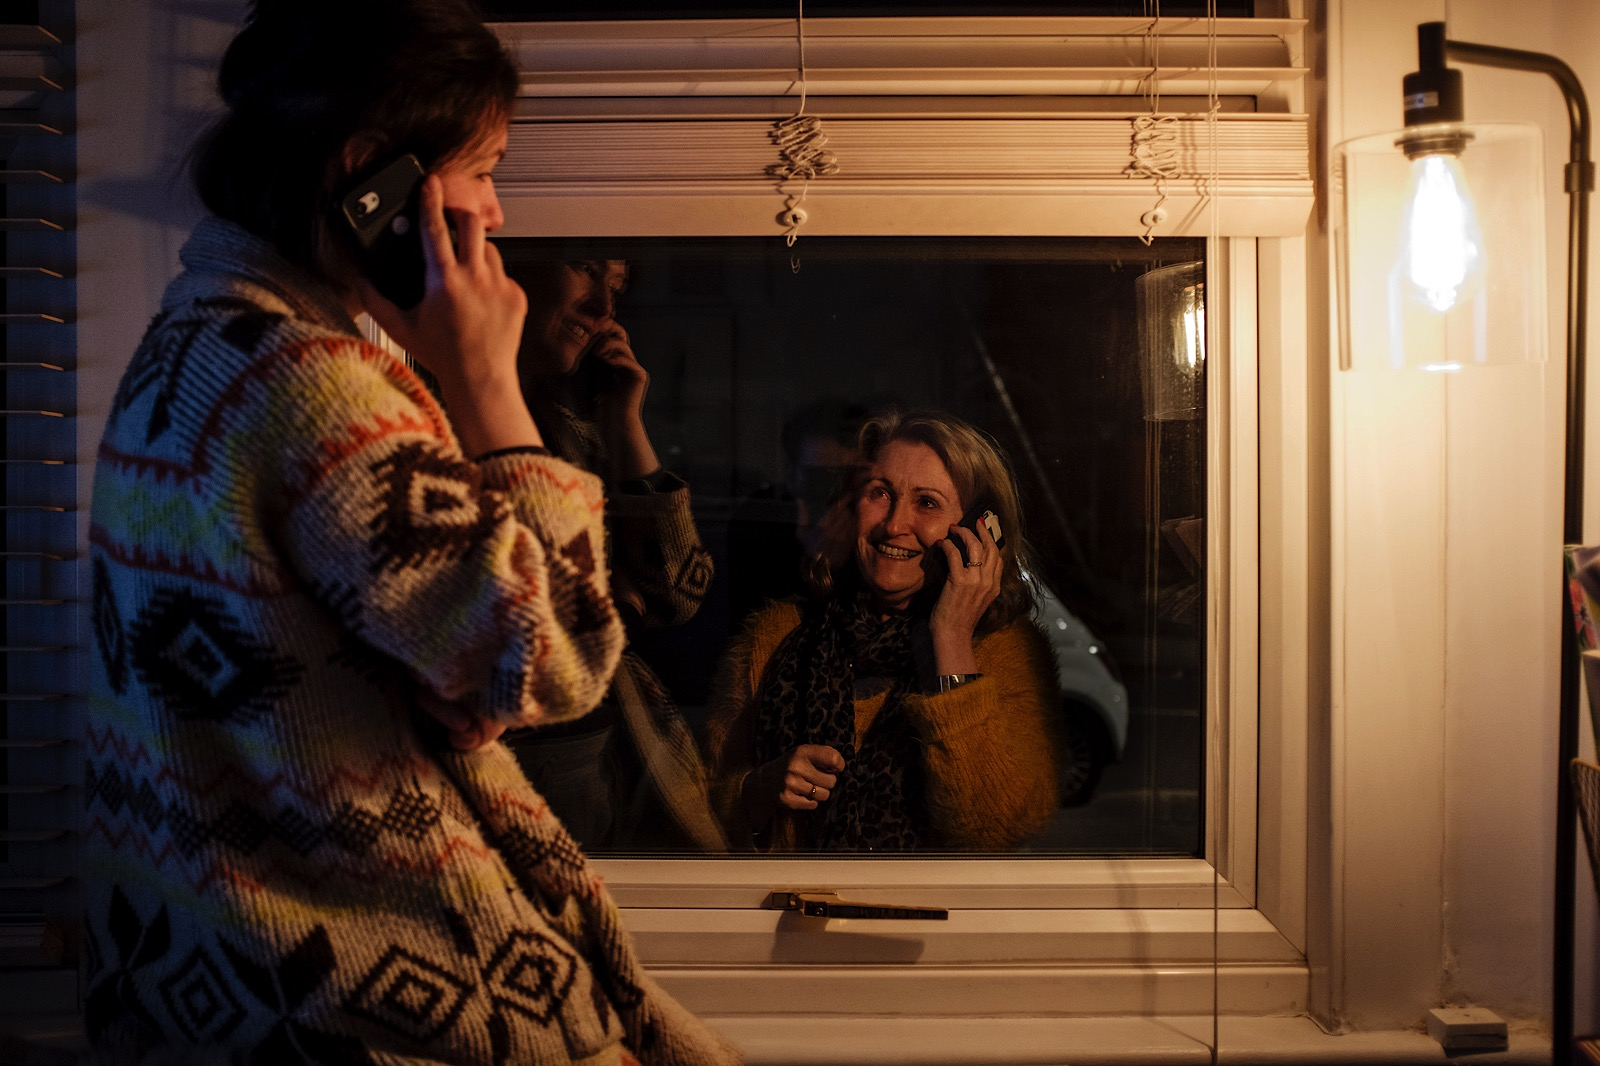 mother and daughter talking on mobiles either side of a window during covid-19 pandemic